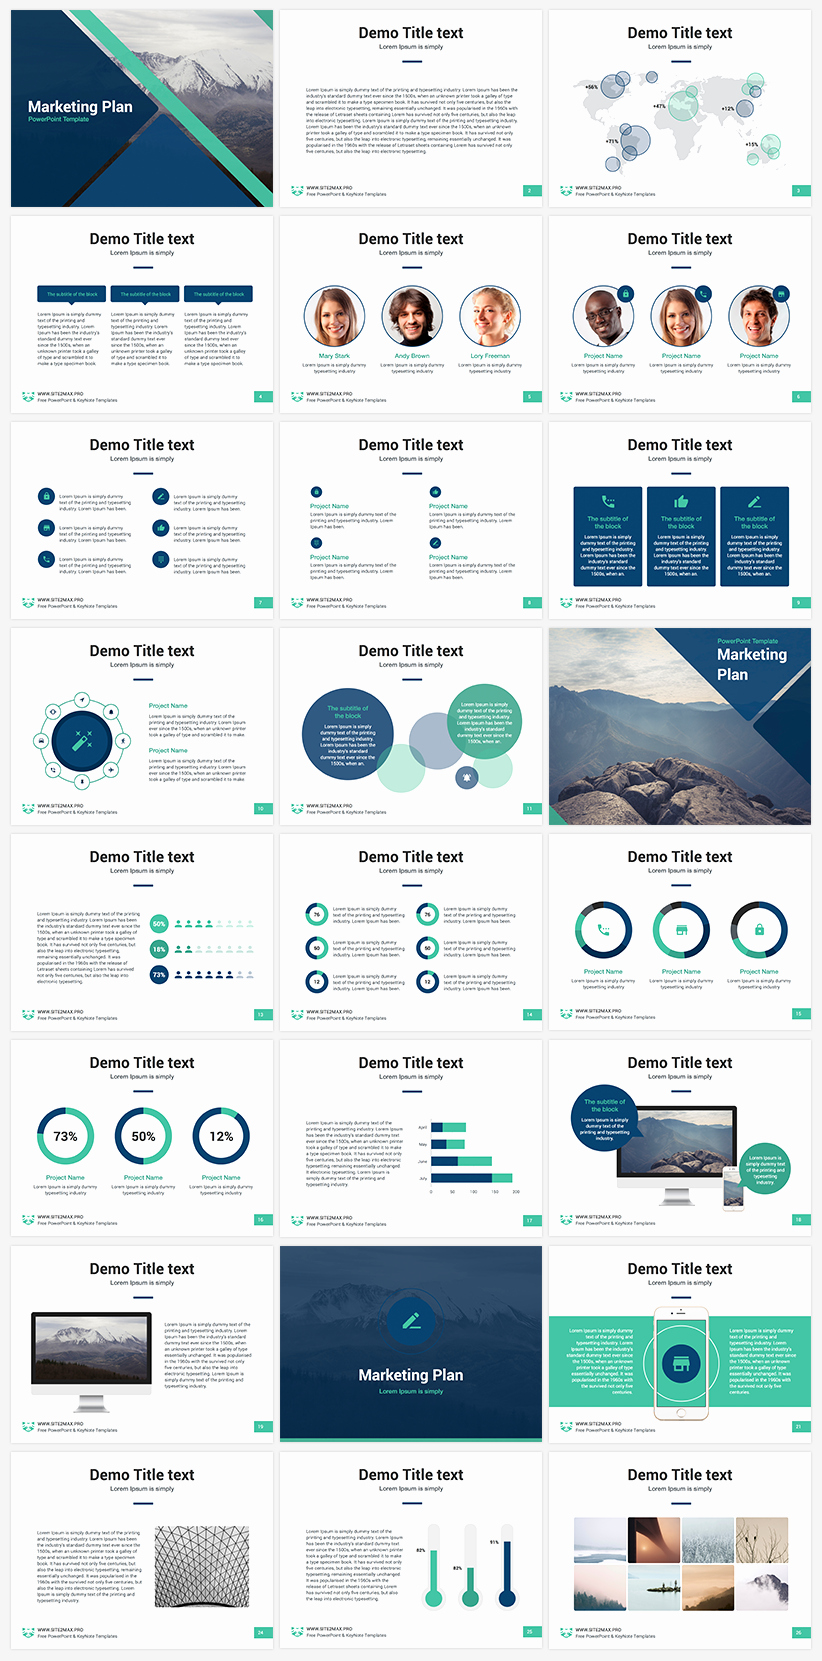 Business Plan Powerpoint Template Free Beautiful Marketing Plan Free Powerpoint Template Present